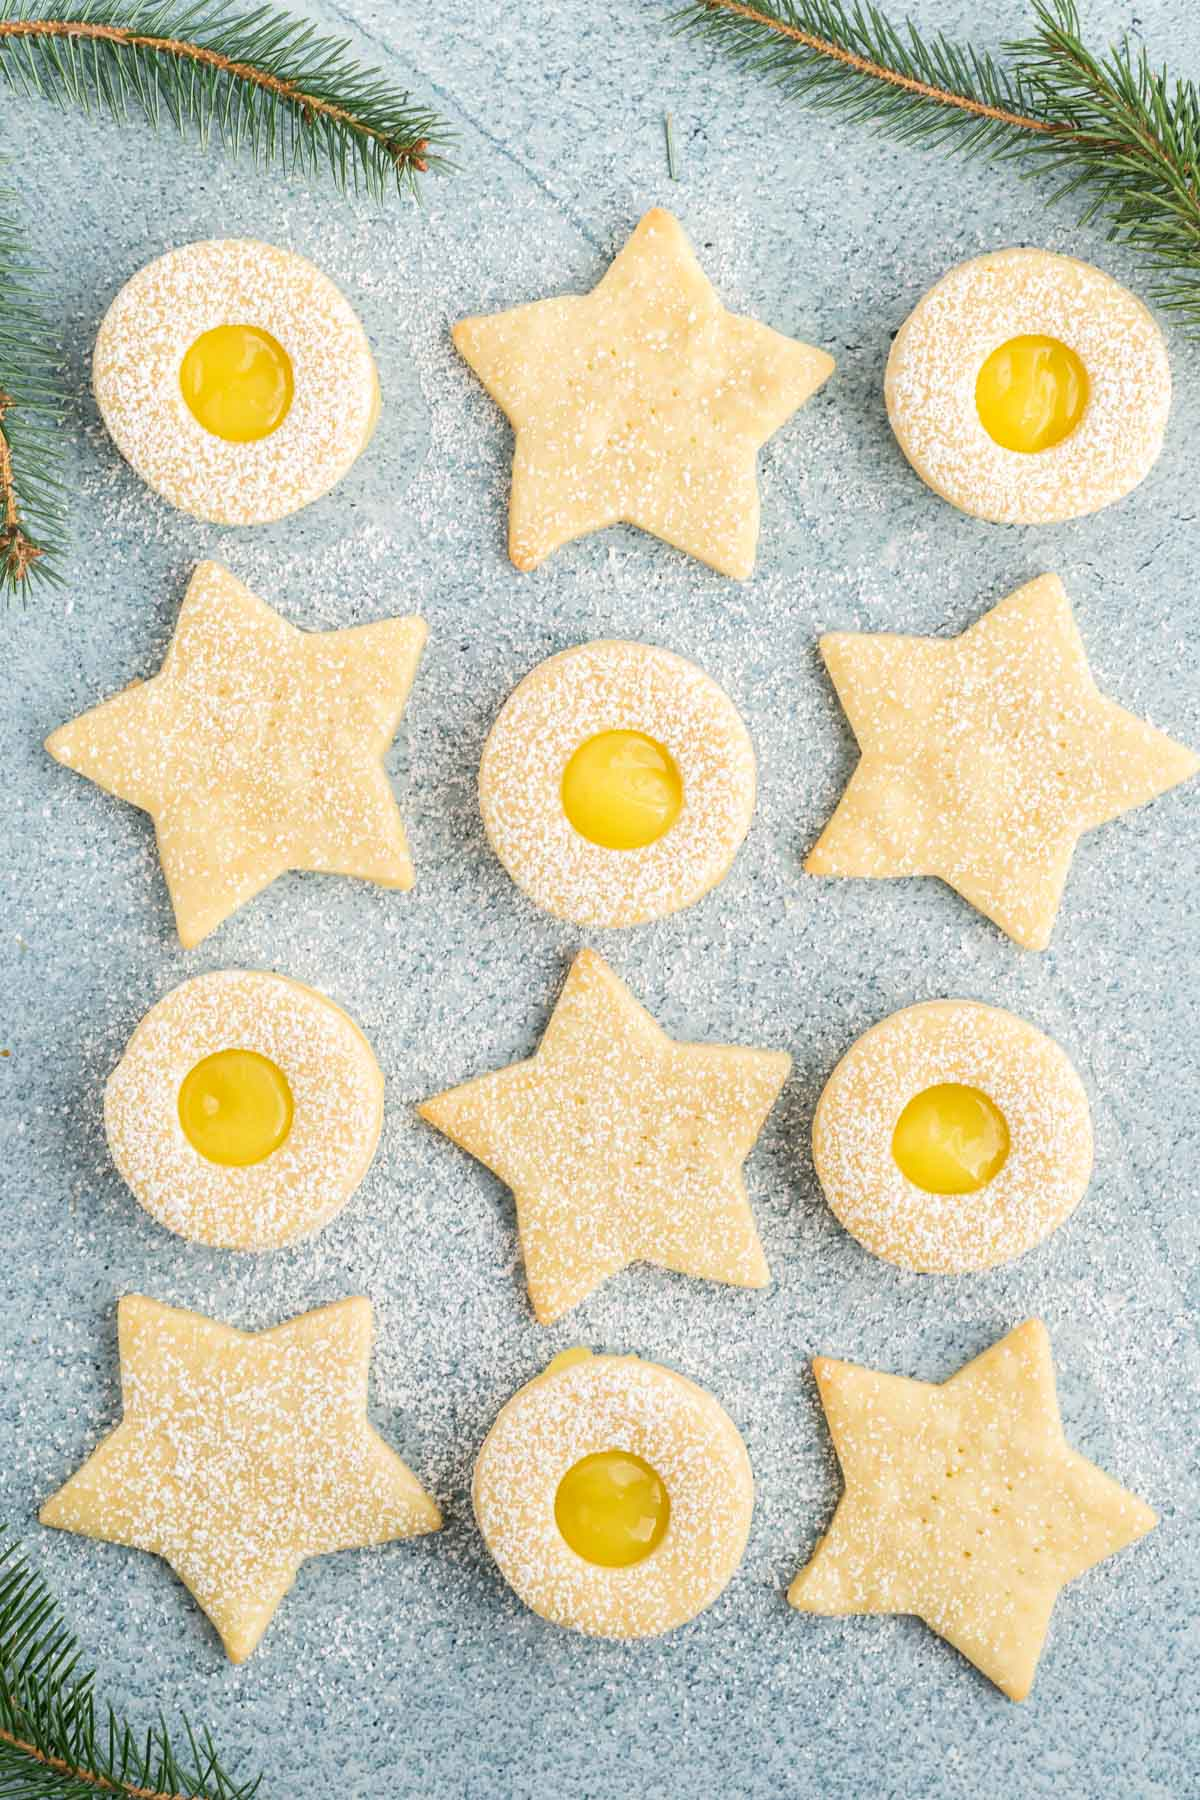 Overhead of round and star shaped lemon shortbread cookies.